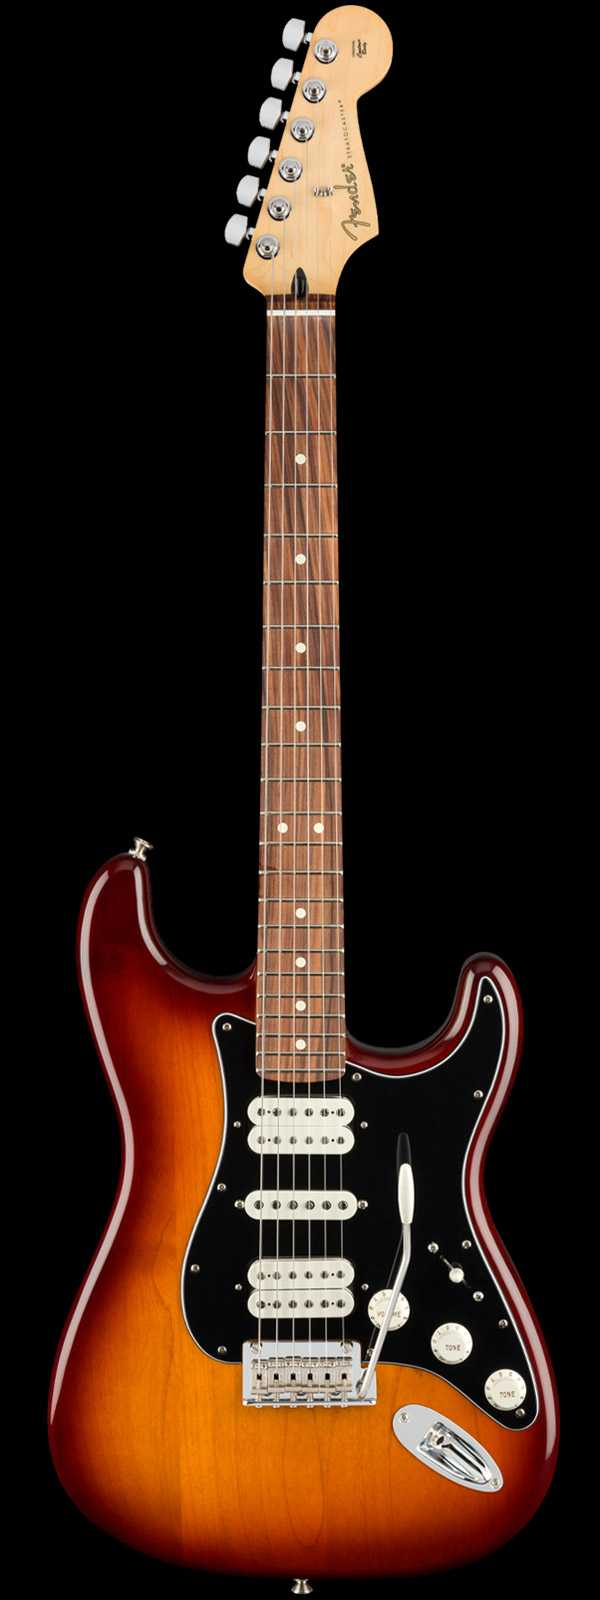 Fender Player Stratocaster HSH Electric Guitar Pau Ferro Tobacco Sunburst